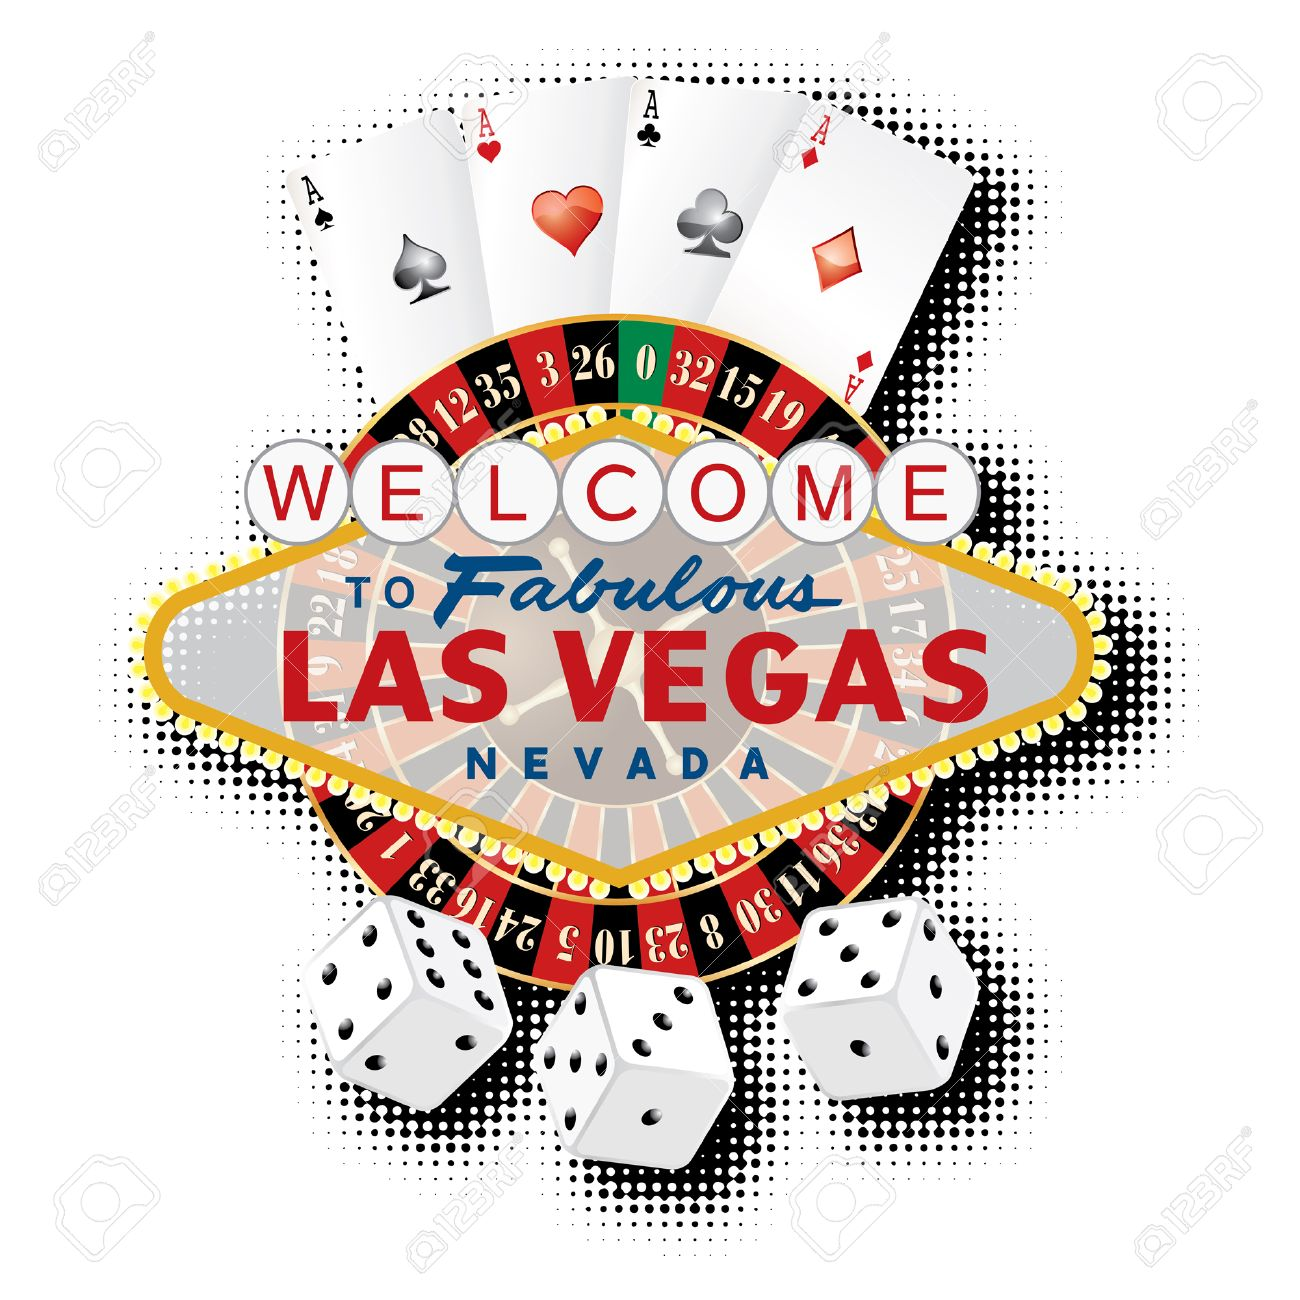 vector american roulette wheel with Las Vegas sign, playing cards and dice - 32825772